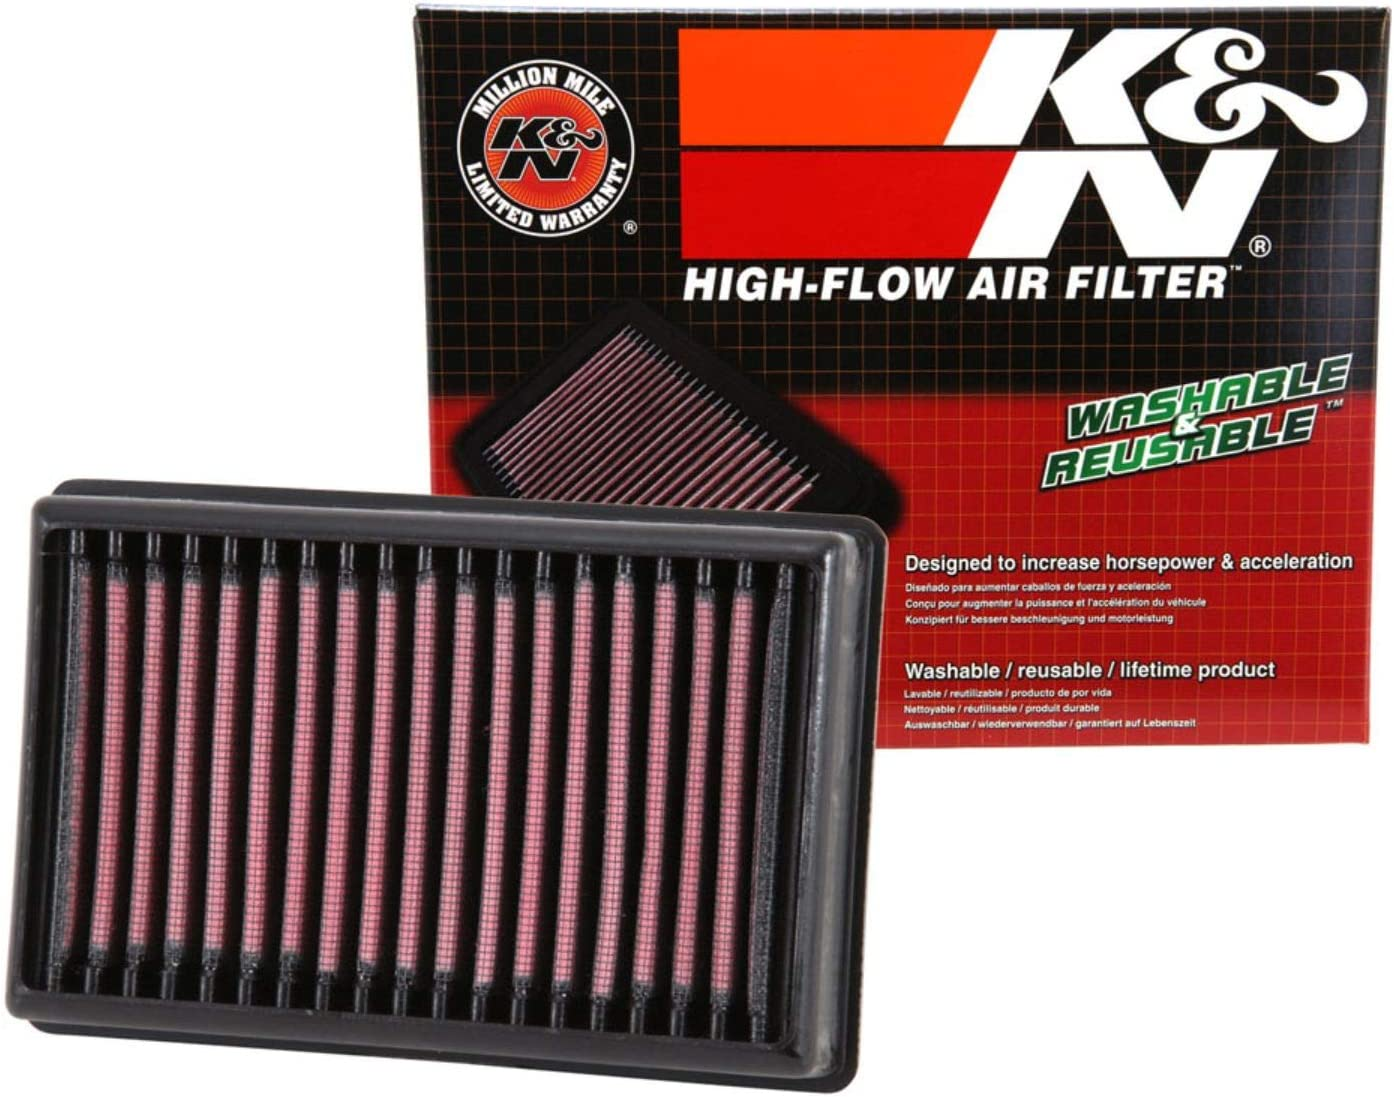 K&N Engine Air Filter: High Performance, Premium, Powersport Air Filter: 2013-2019 BMW (R1250GS, R1250GS Adventure, R1250RT,R1200GS, R1200GS Adventure, R1200R, R1200RS, R1200RT) BM-1113